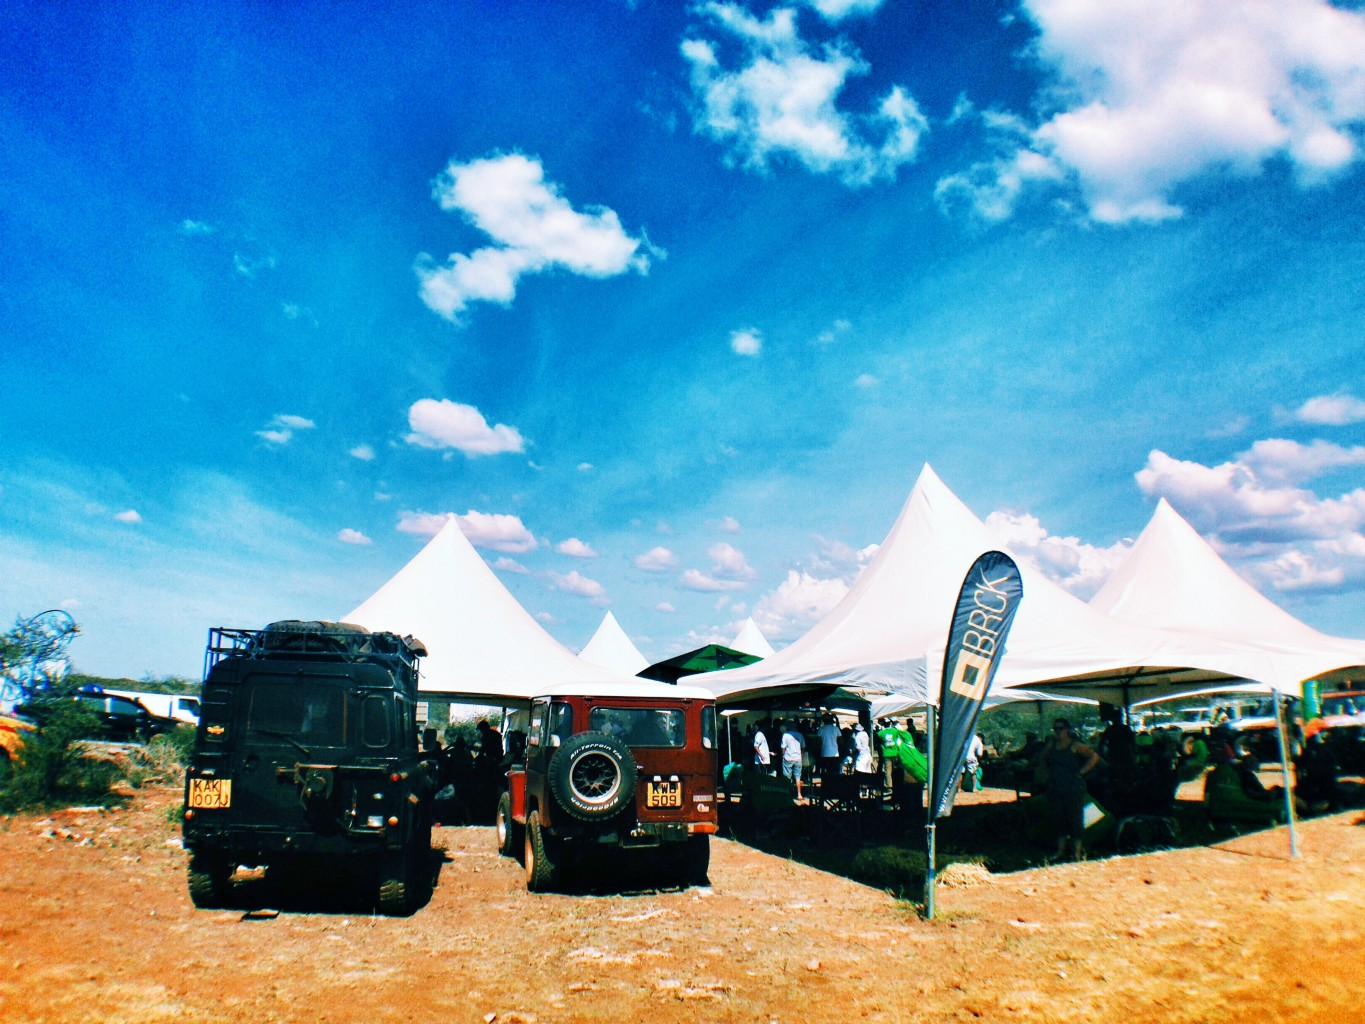 The BRCK team sets up at the Rhino Charge 2014